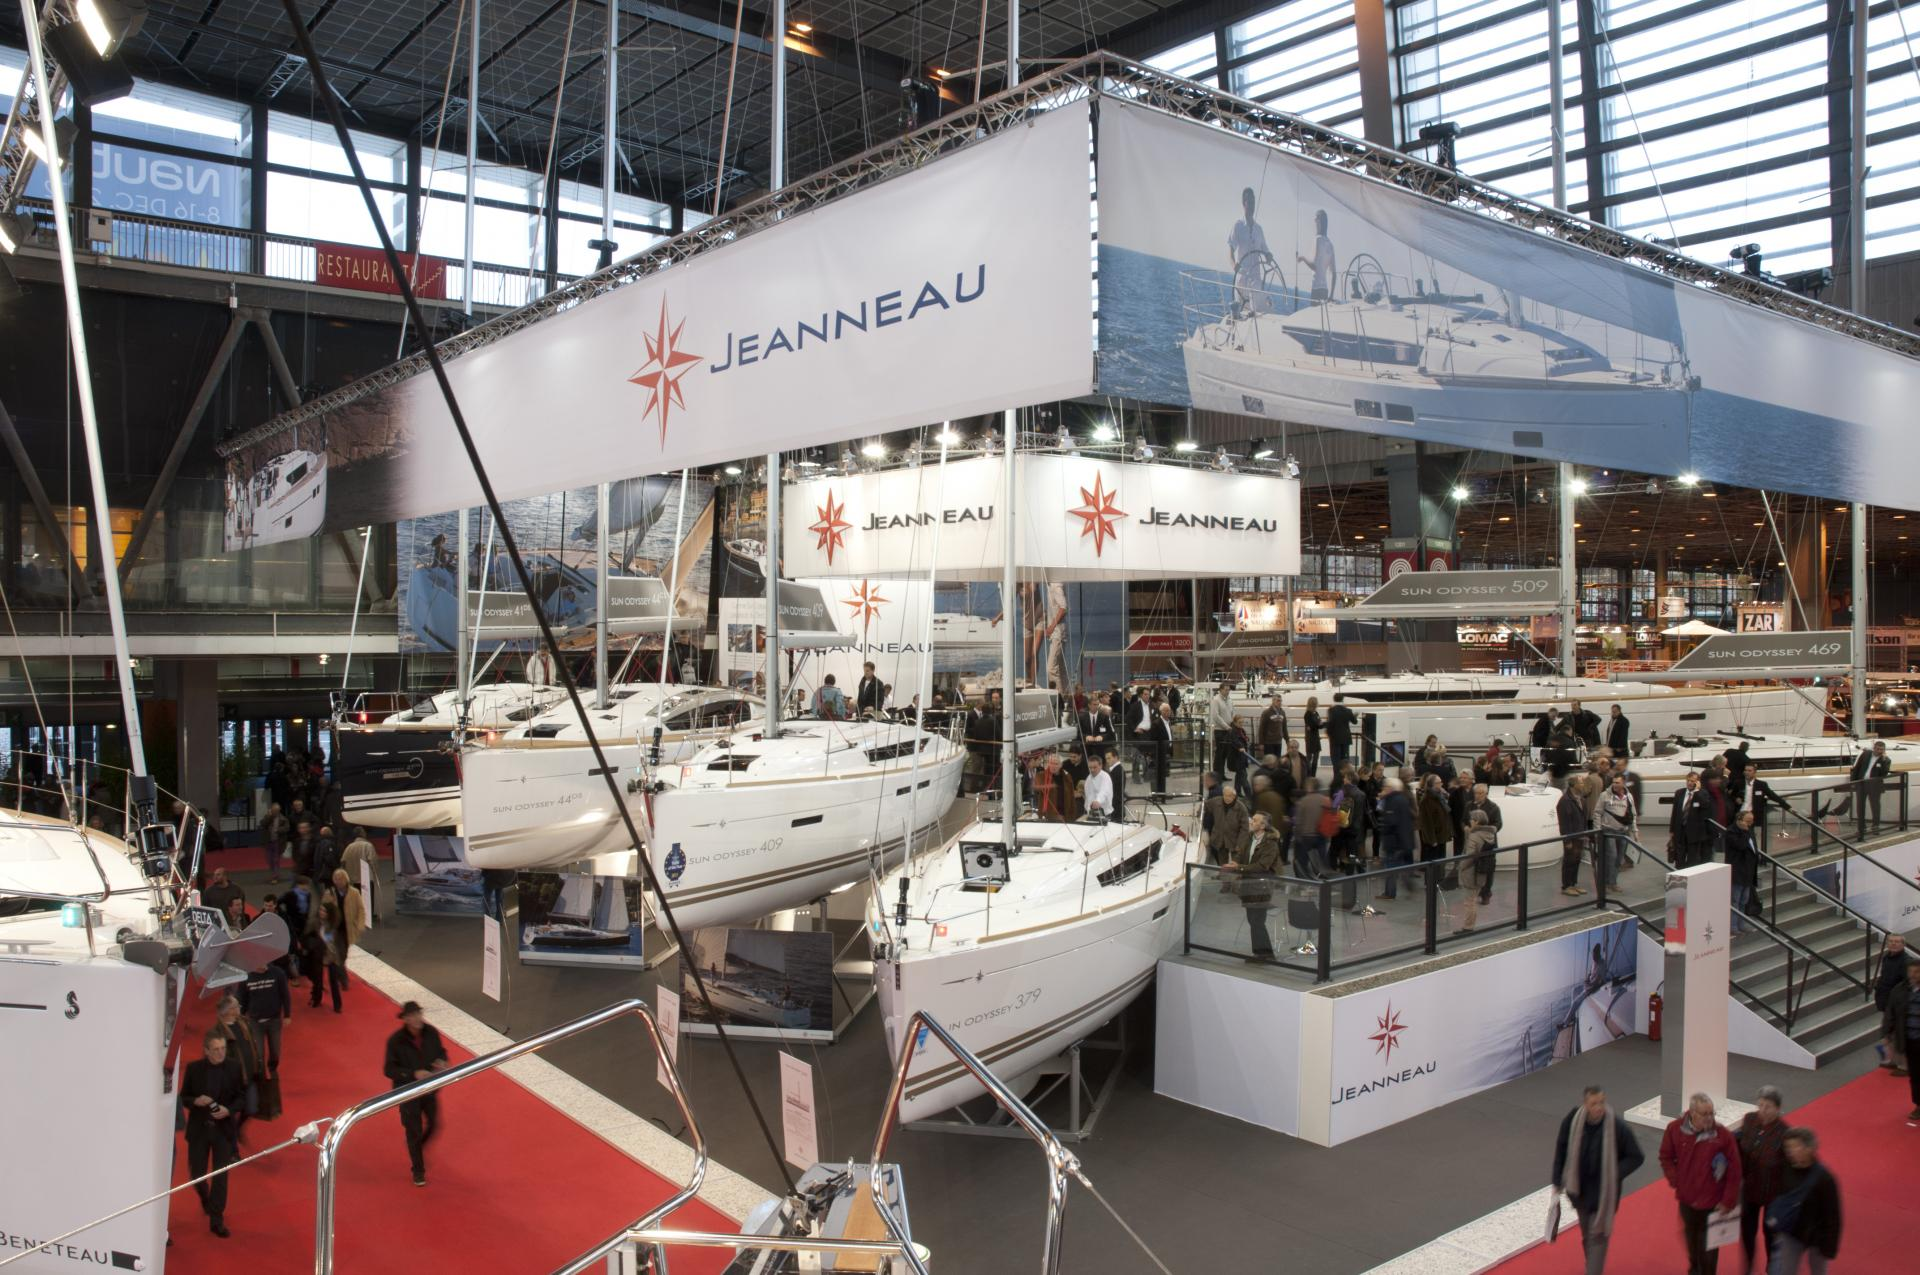 Jeanneau sur le salon nautique de paris 2012 jeanneau for Salon bateau paris